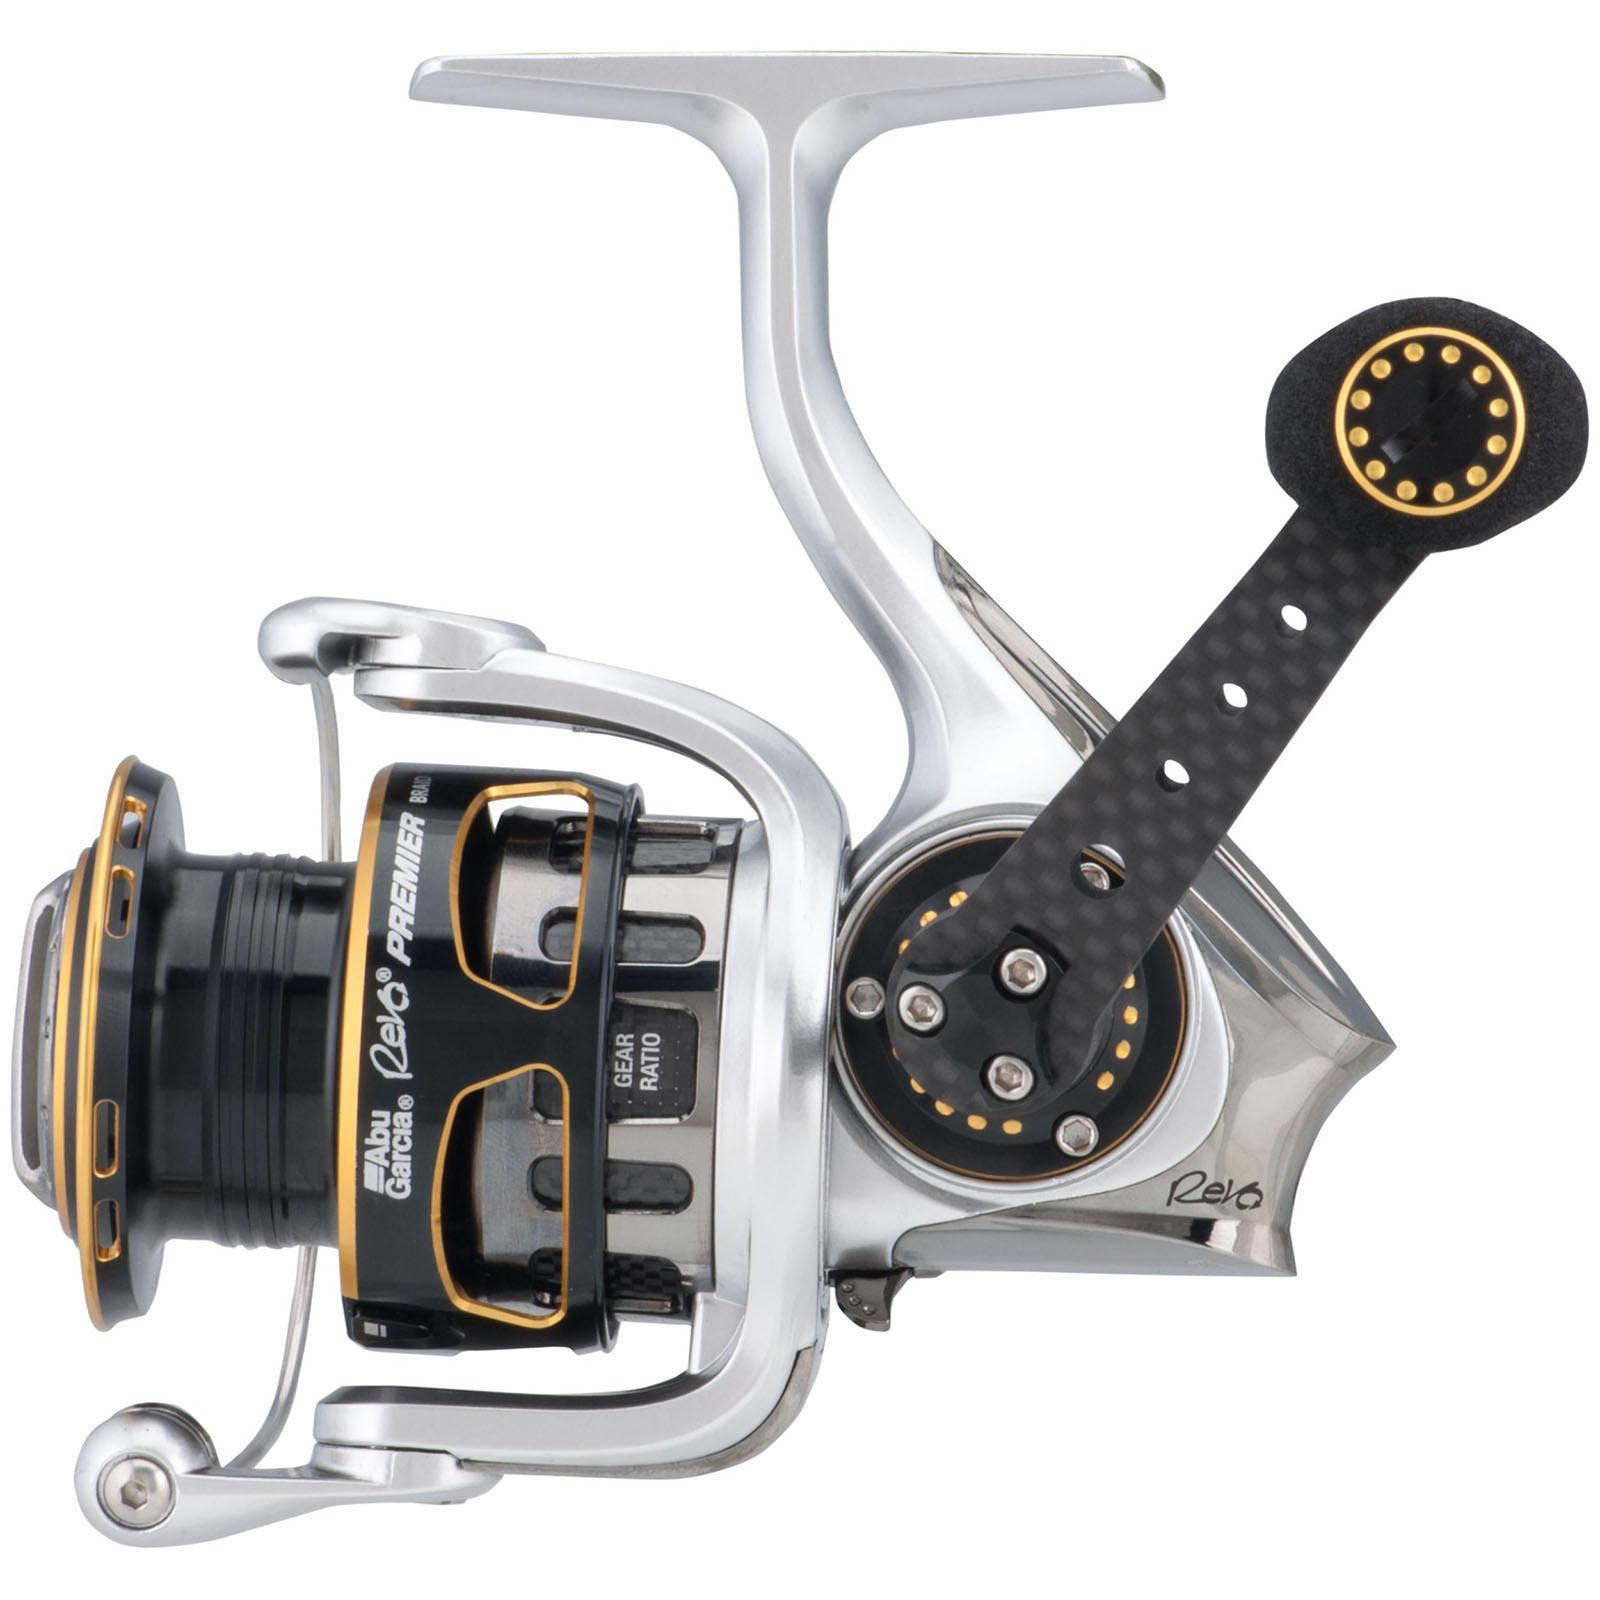 Abu Garcia Revo Premier Handle View